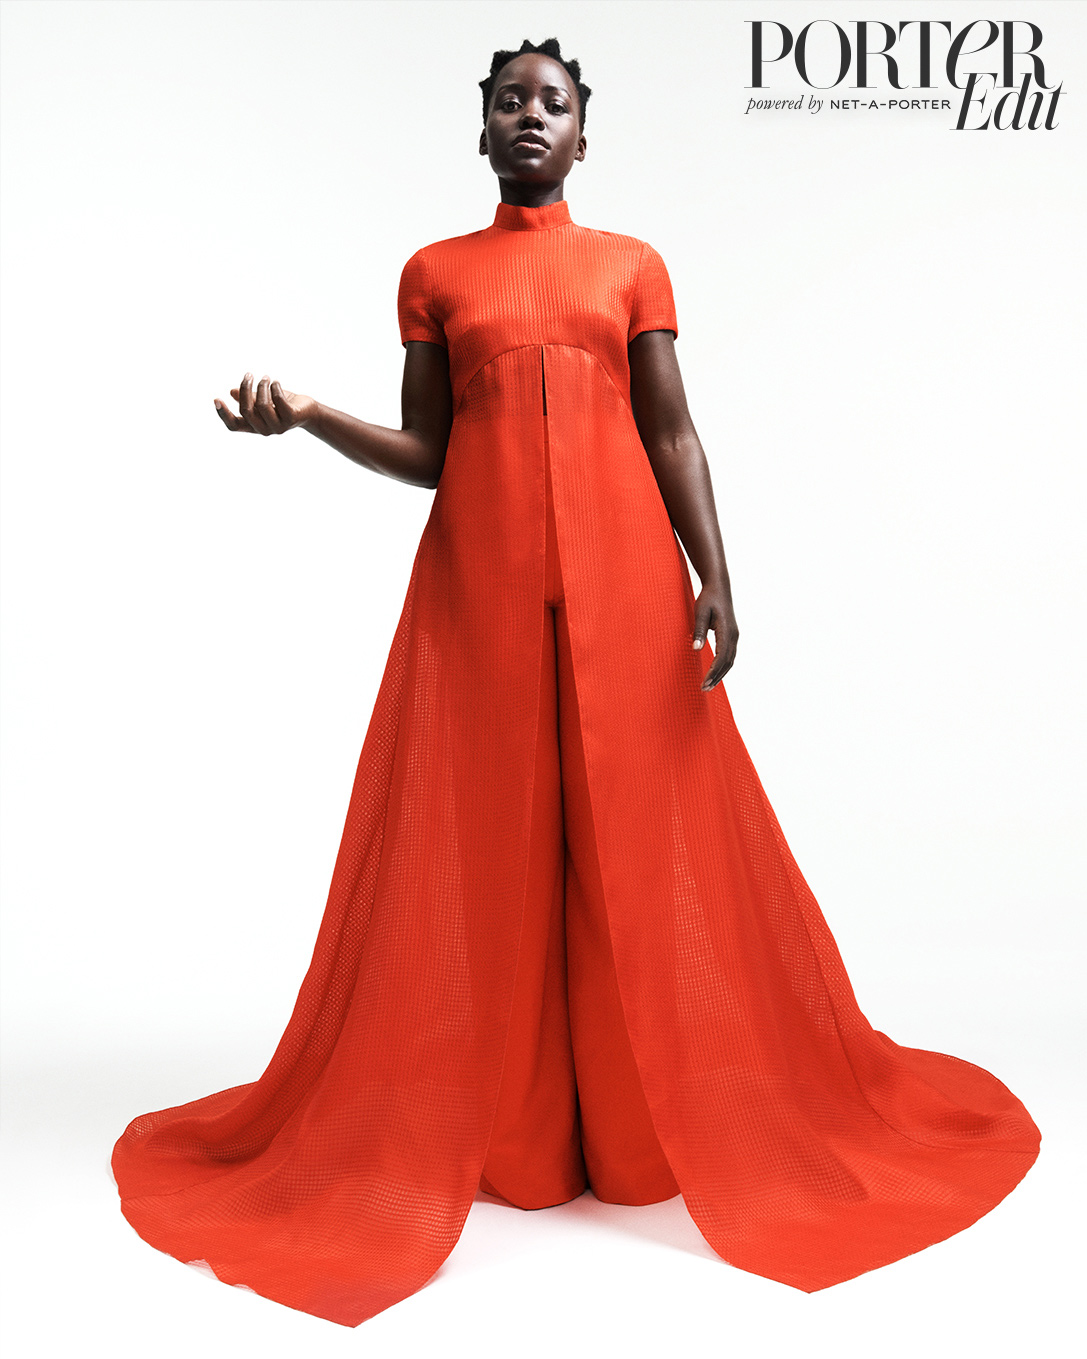 Lupita Nyong'o: There 'Was an Intimacy' With Jared Leto - Lupita Nyong'o wears top and pants by Brandon Maxwell.